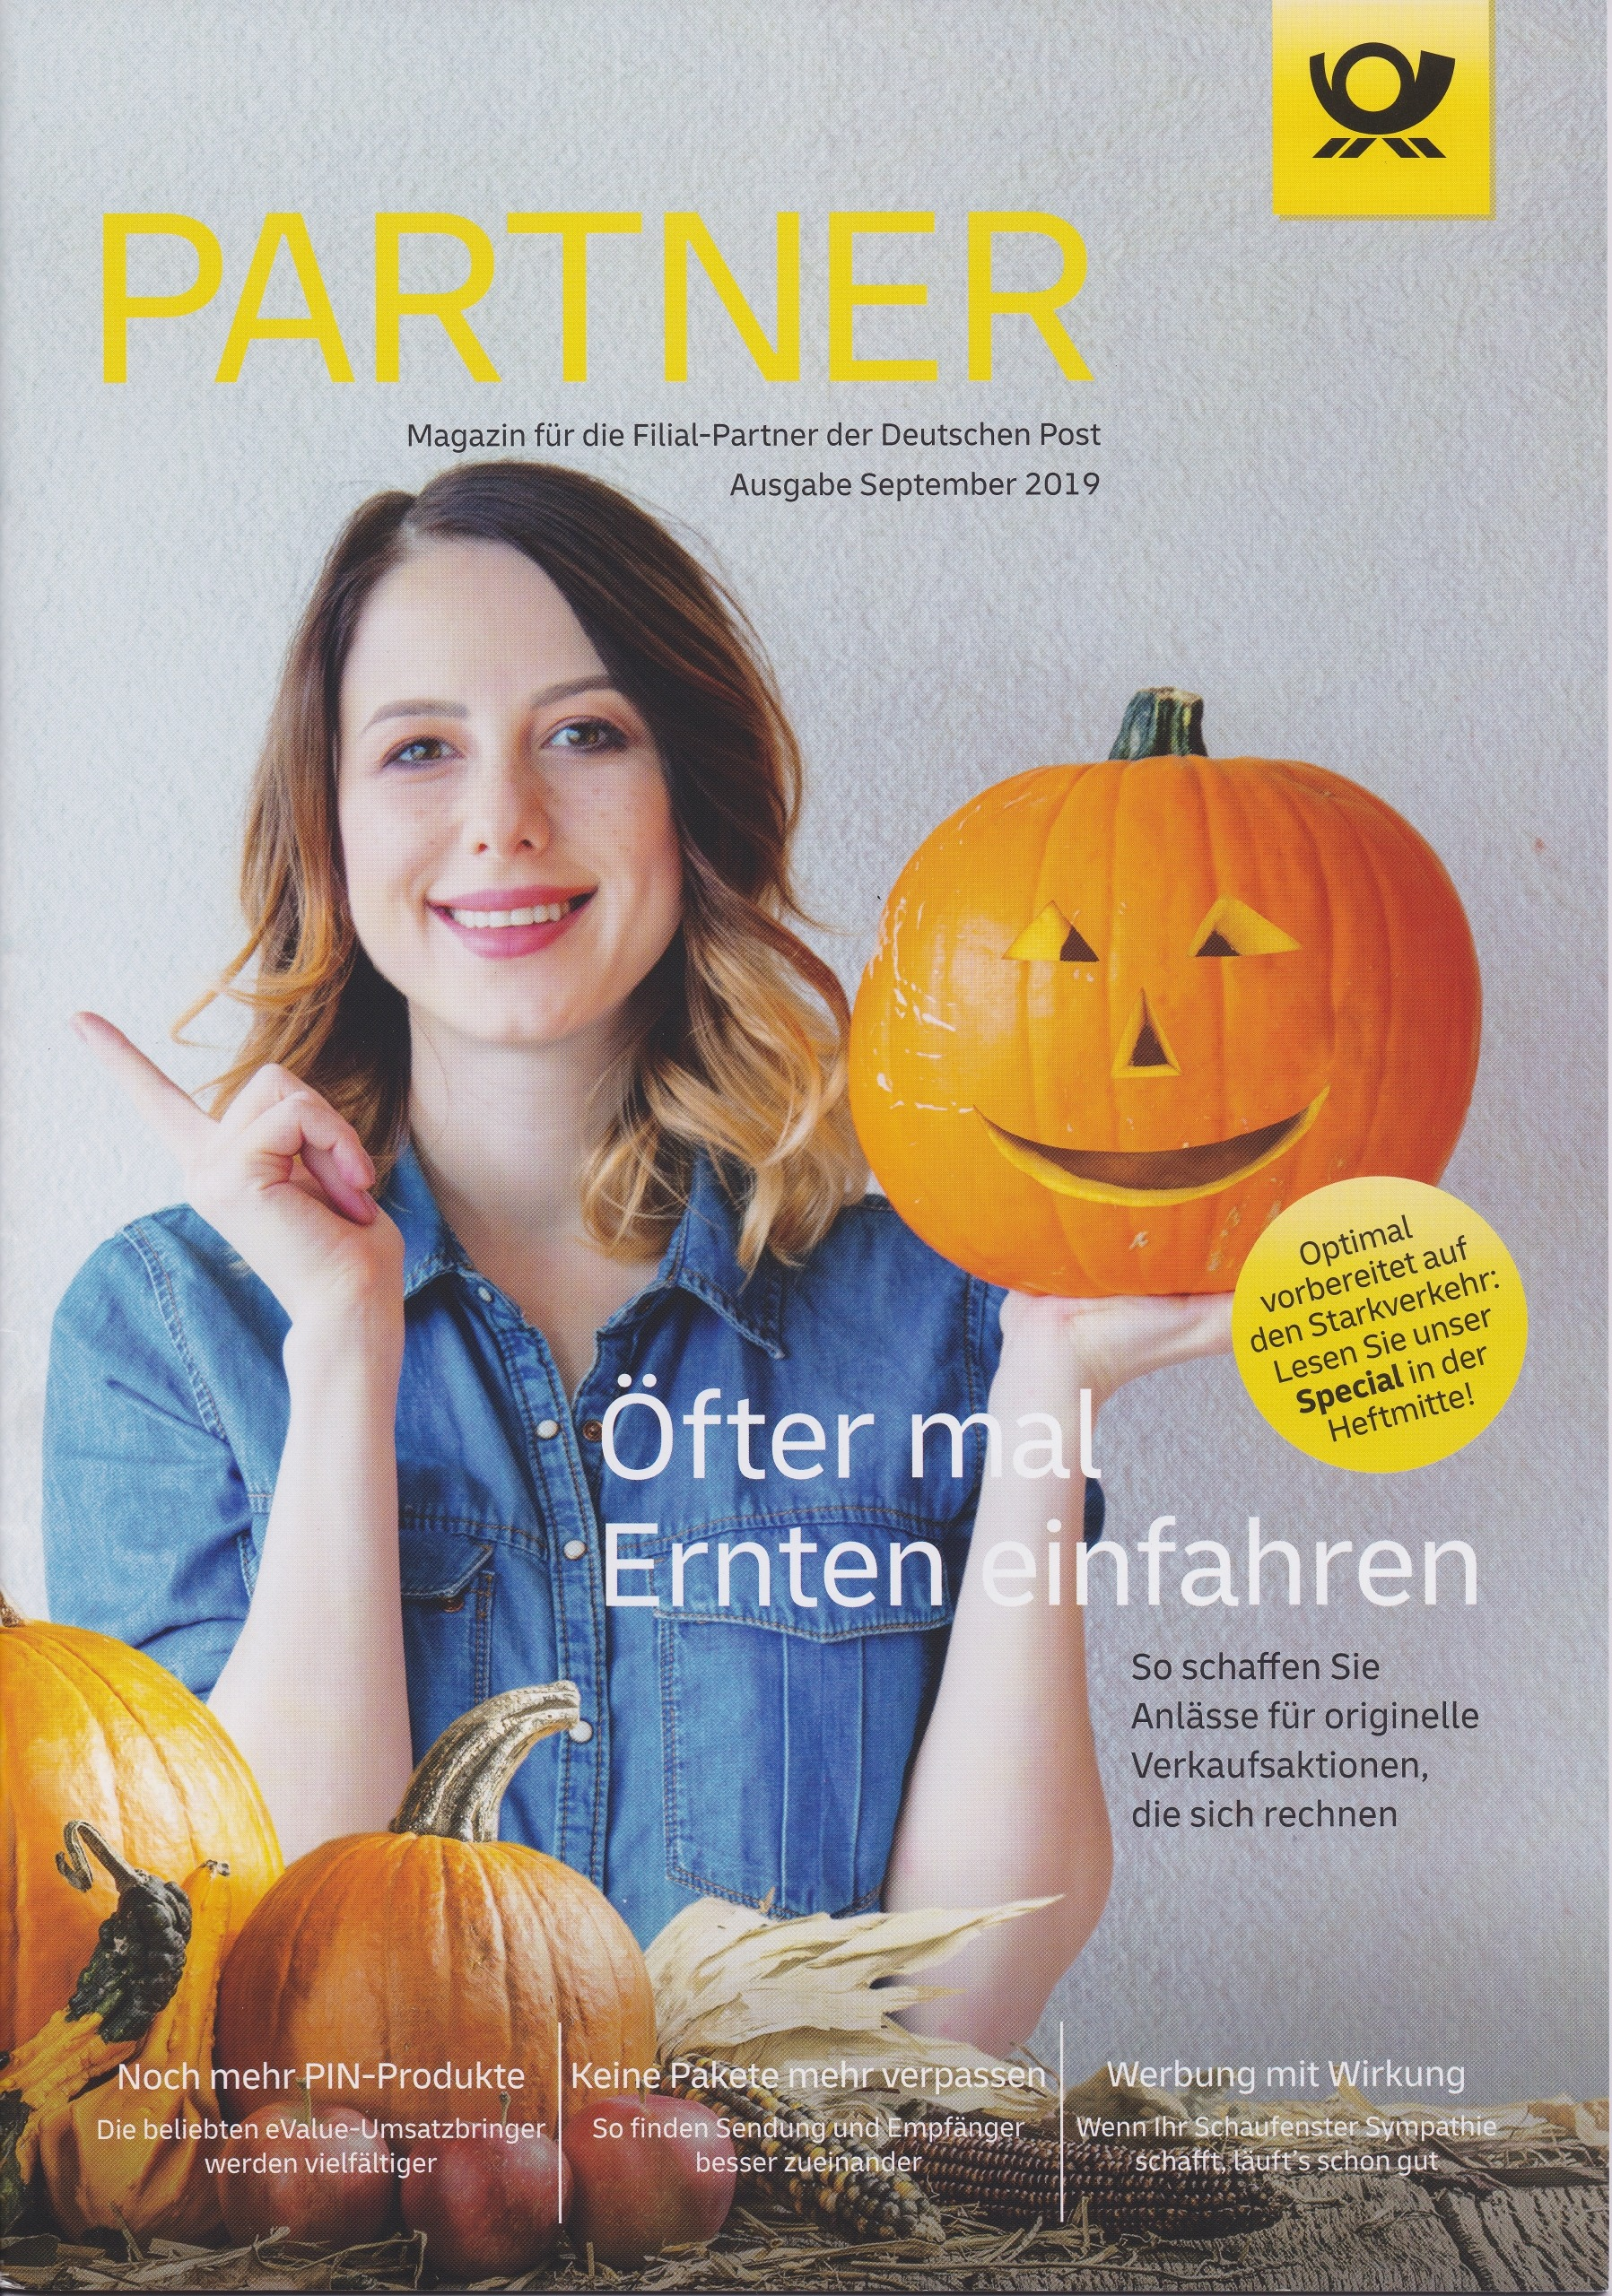 Partner deutsche Post September 2019 - Cover